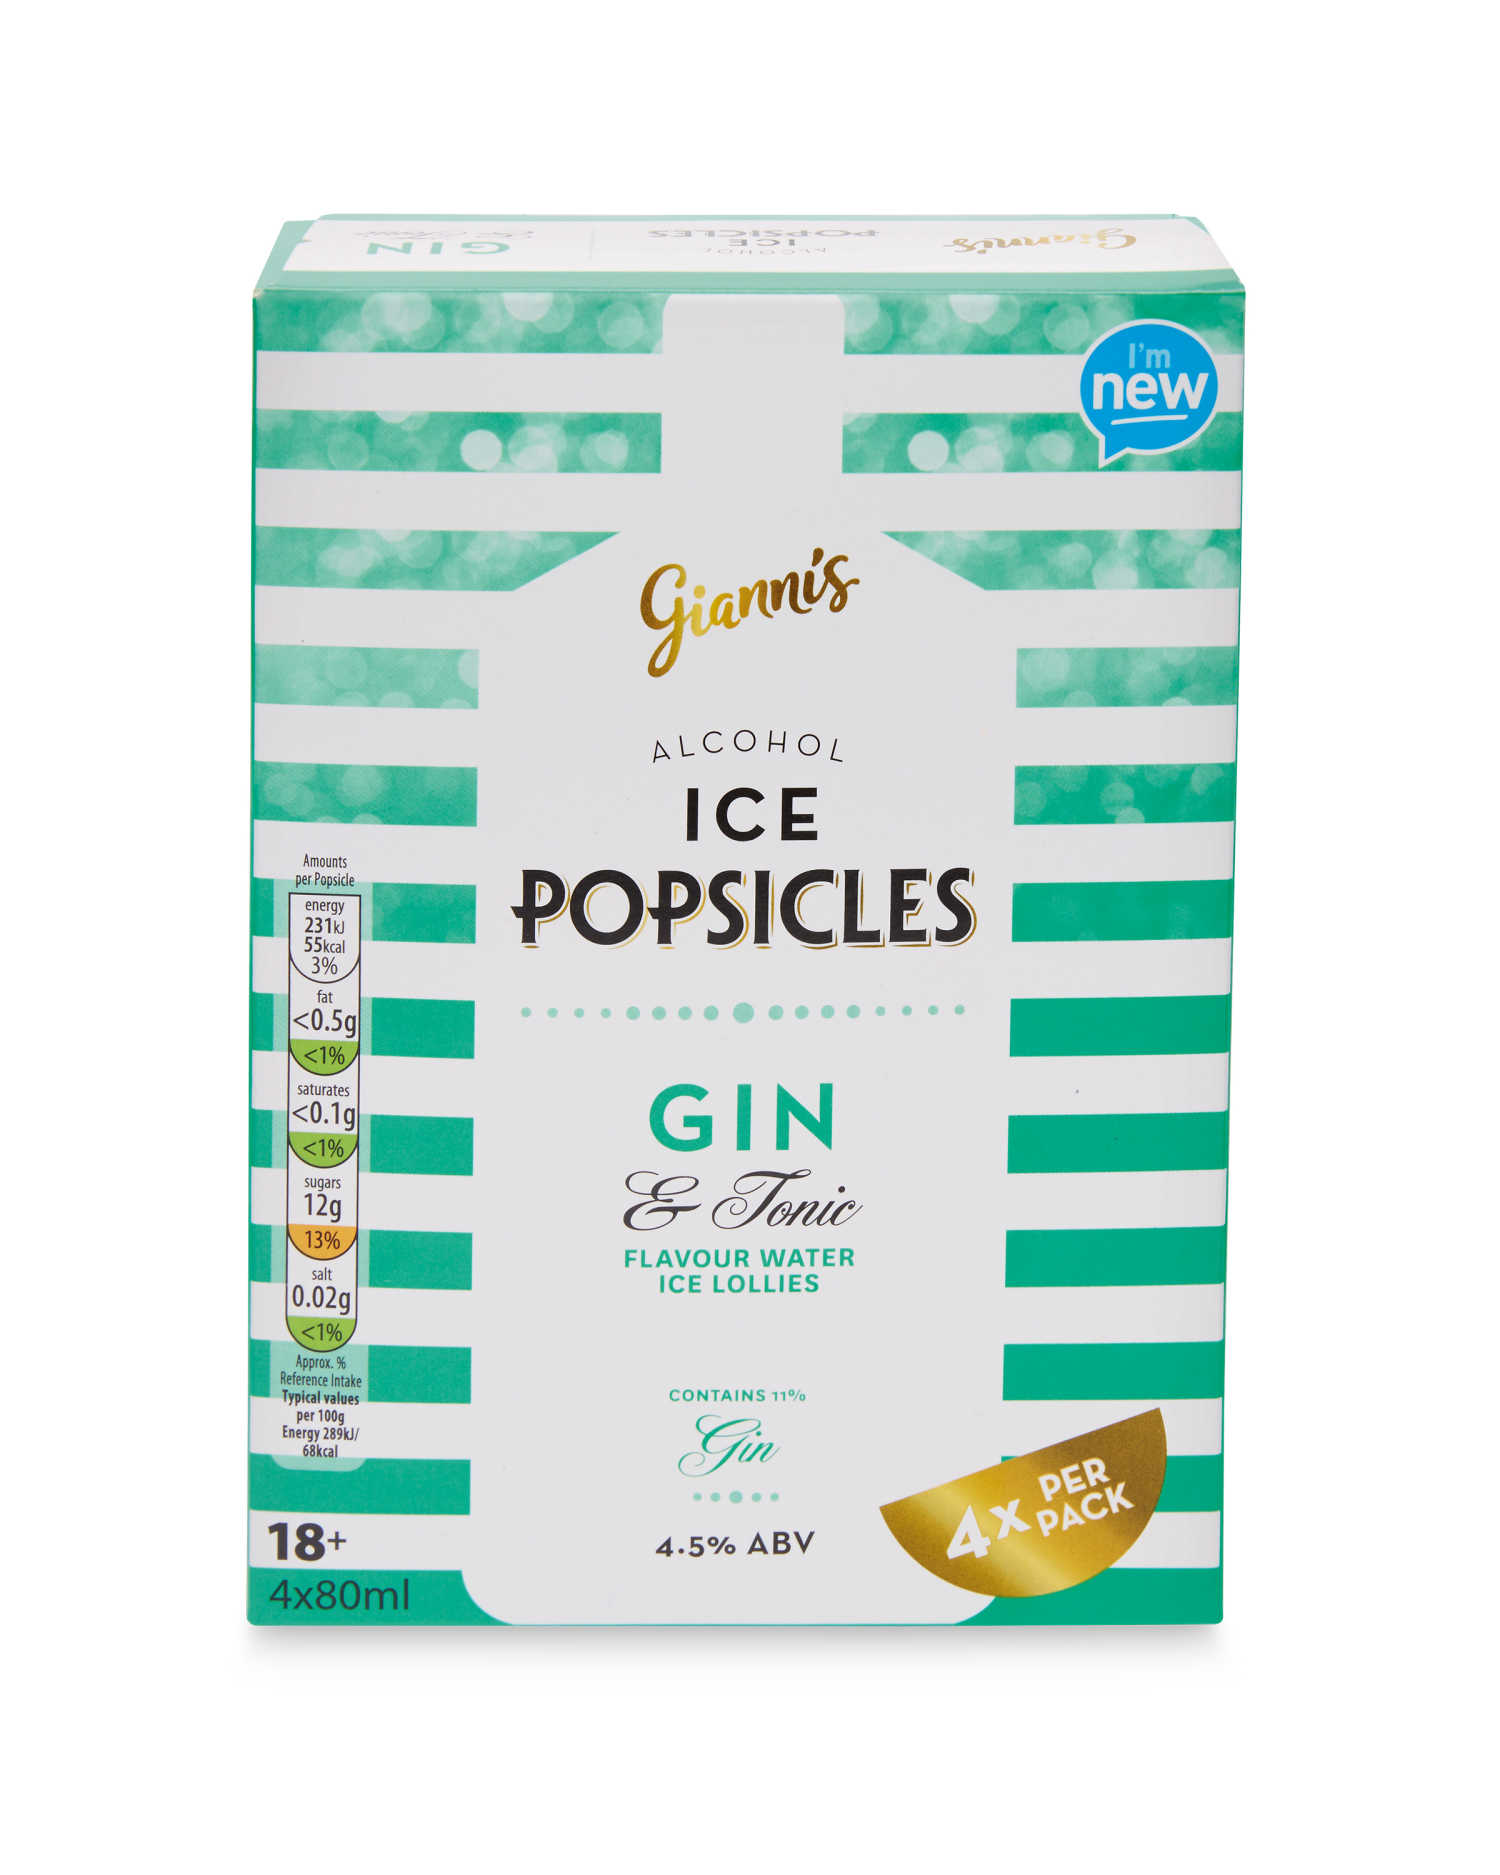 Aldi Gin and tonic Popsicle